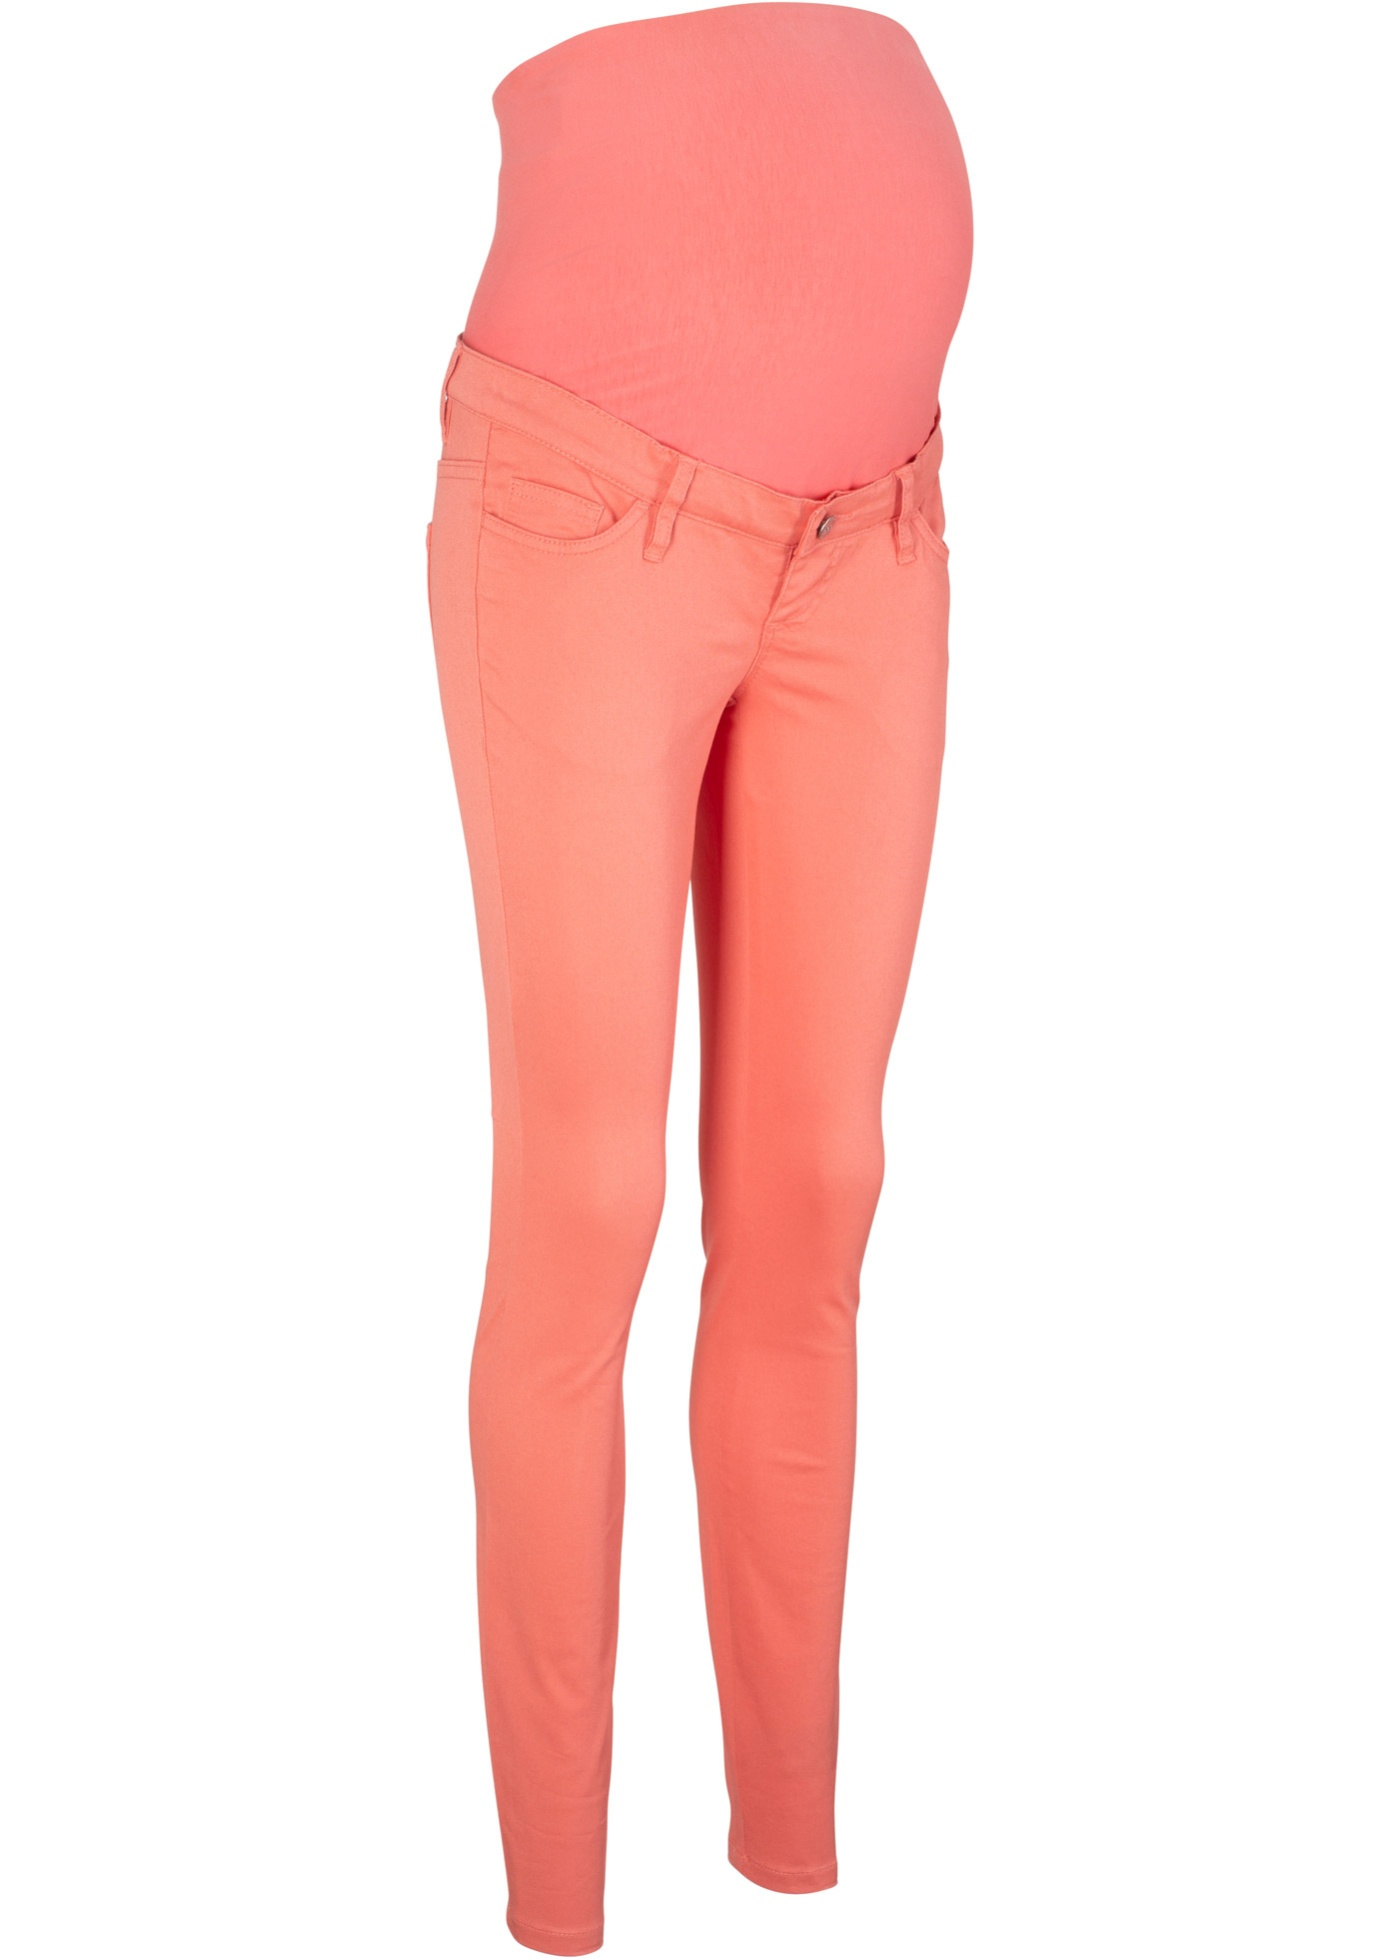 Pantalone prémaman (rosa) - bpc bonprix collection